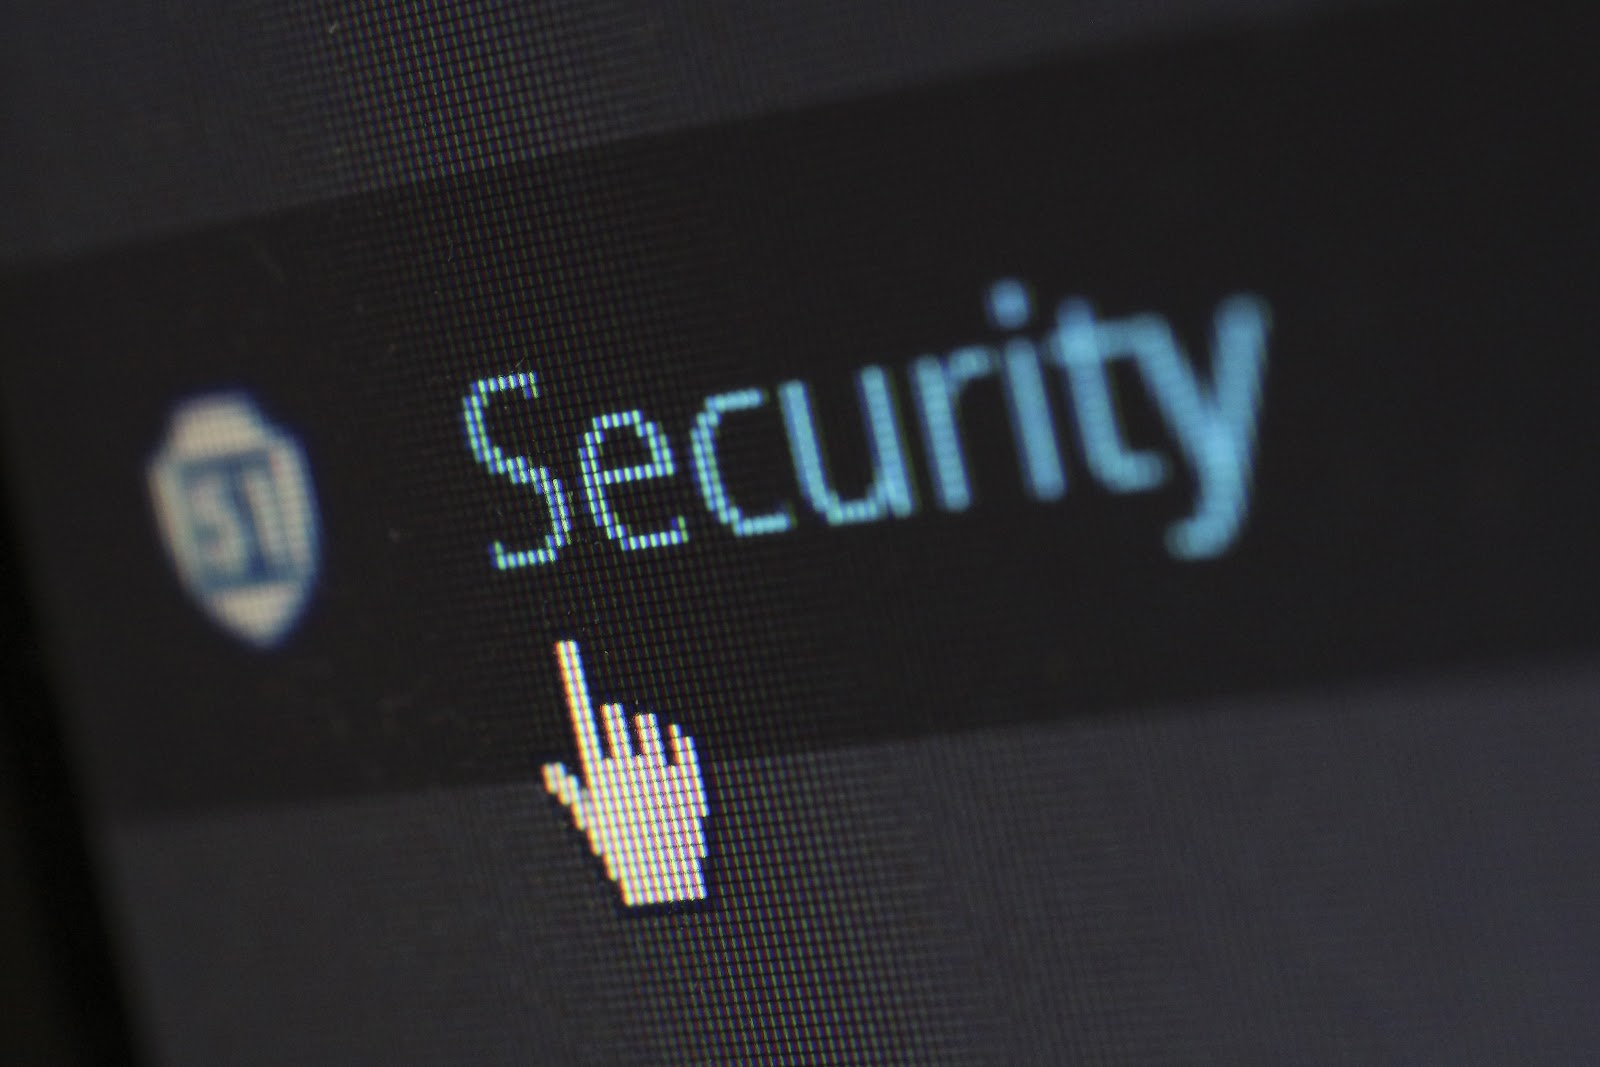 software bugs and security errors